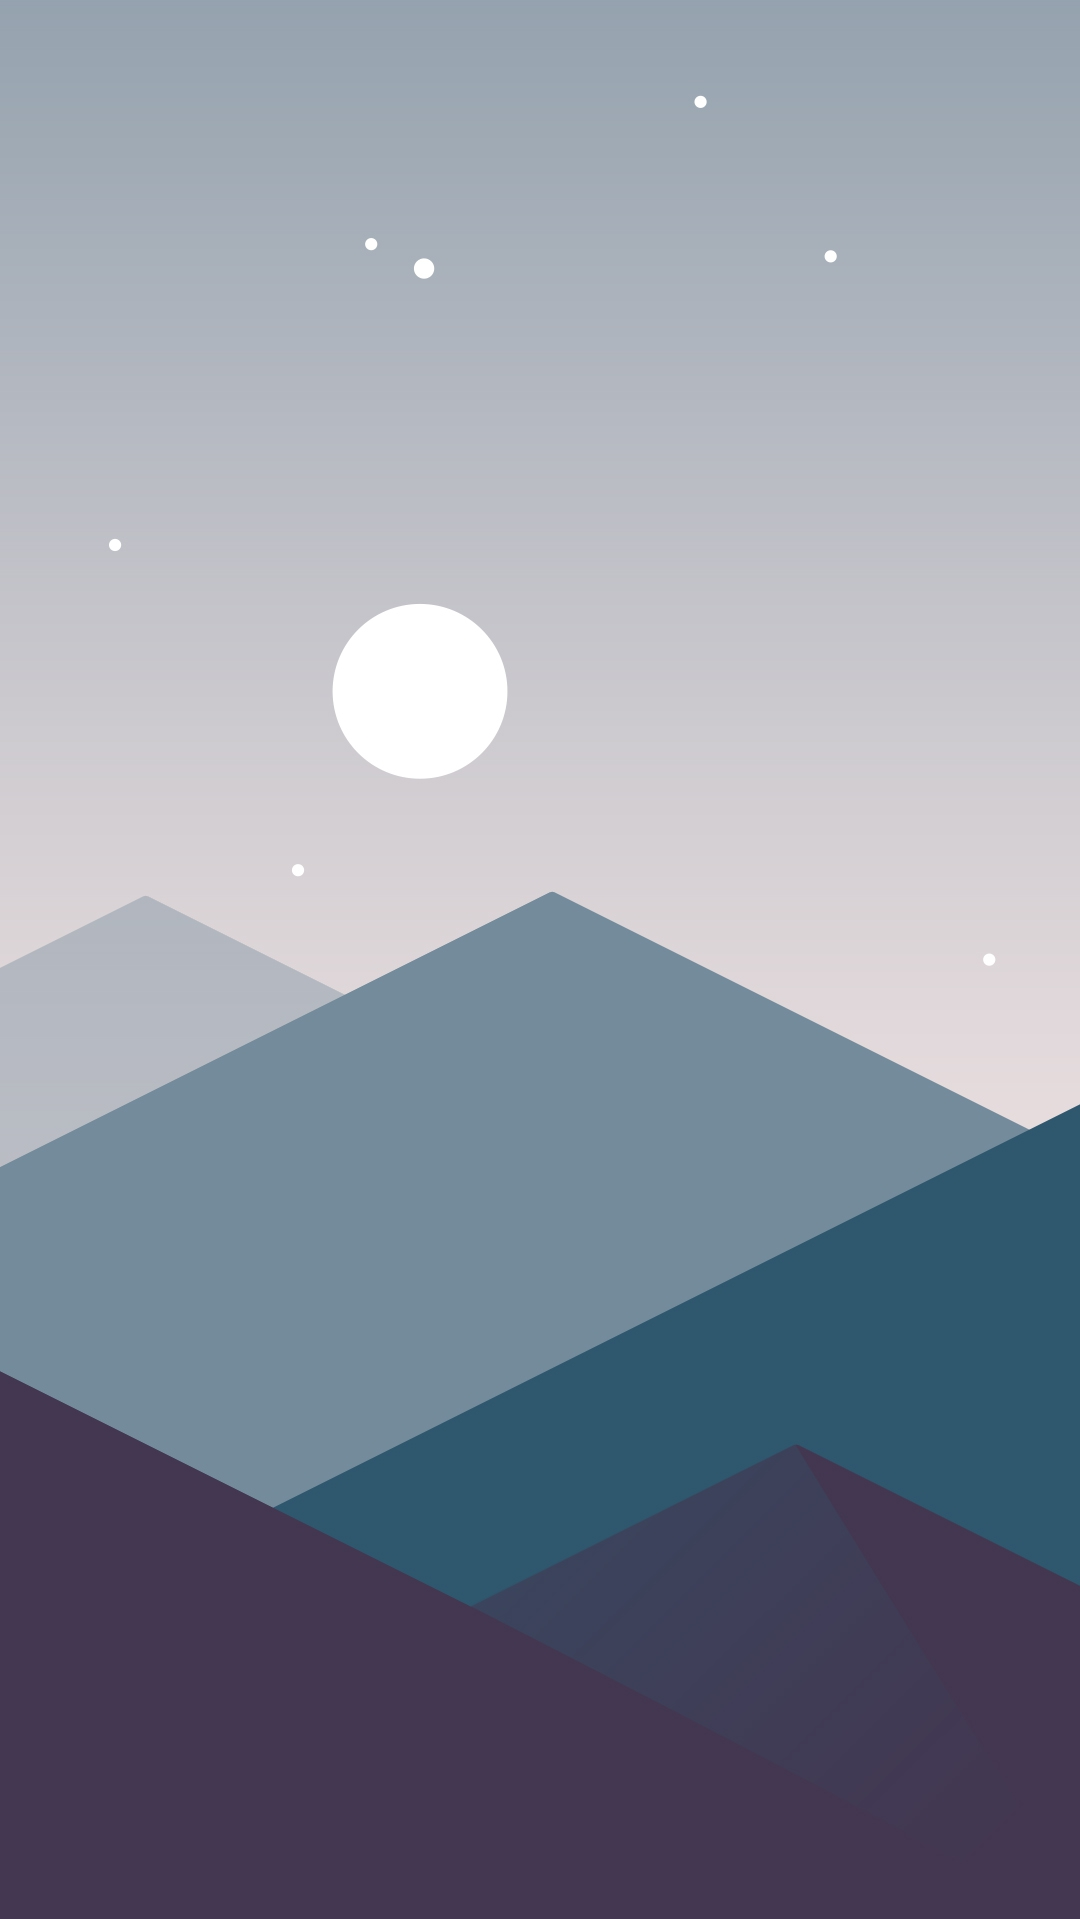 Wallpapers Clean Cute Desktop Minimalistic Mountains Night Moon Iphone Wallpaper